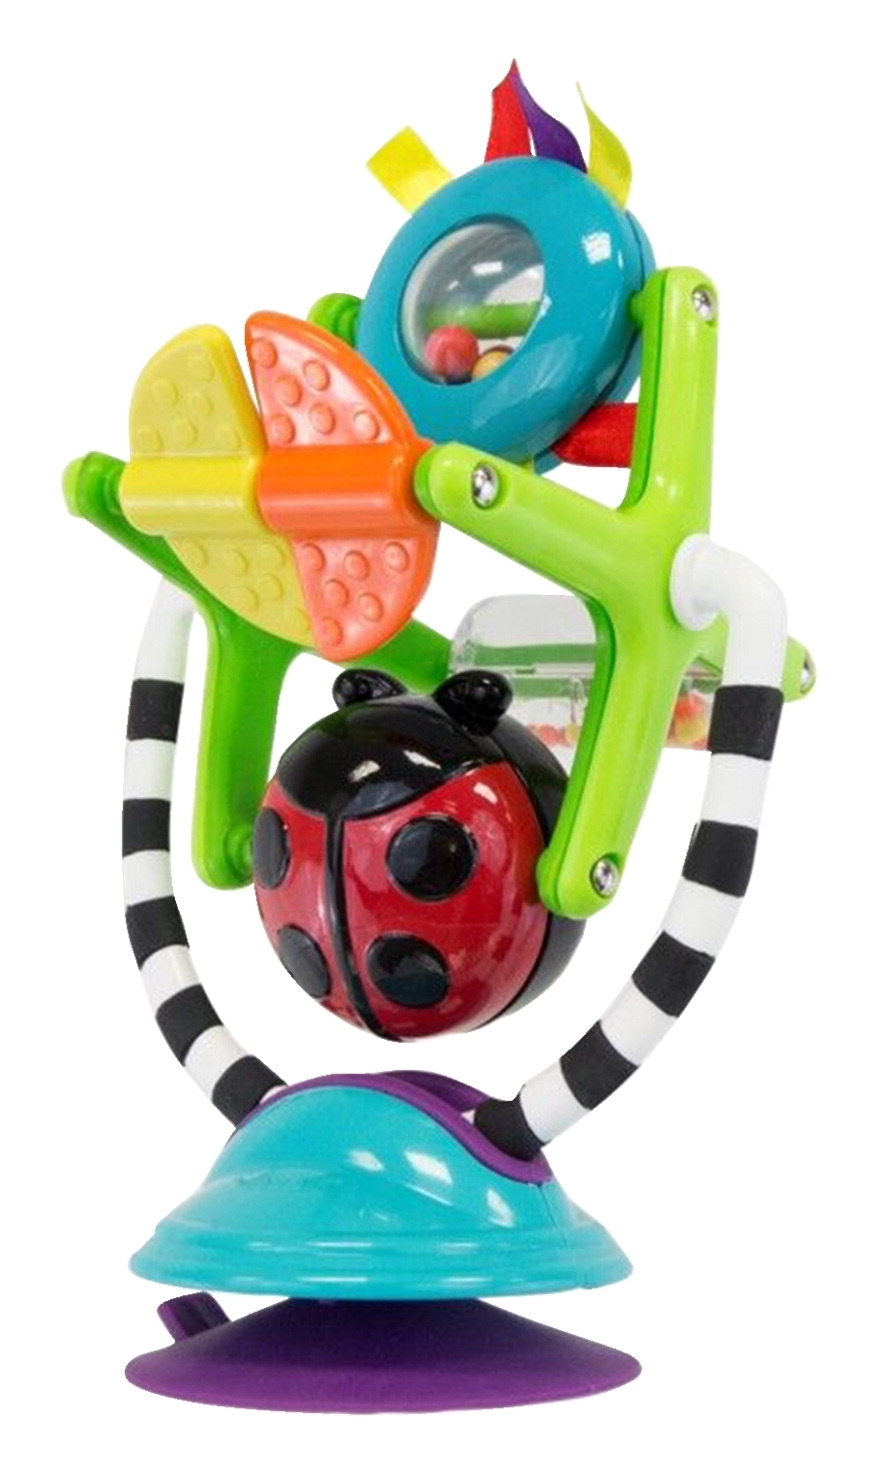 Learning: Play Early Childhood Active Play Gross Motor - 1336631 - Sassy Baby Sensation Station Suction Toy; Colors And Styles May Vary 1336631